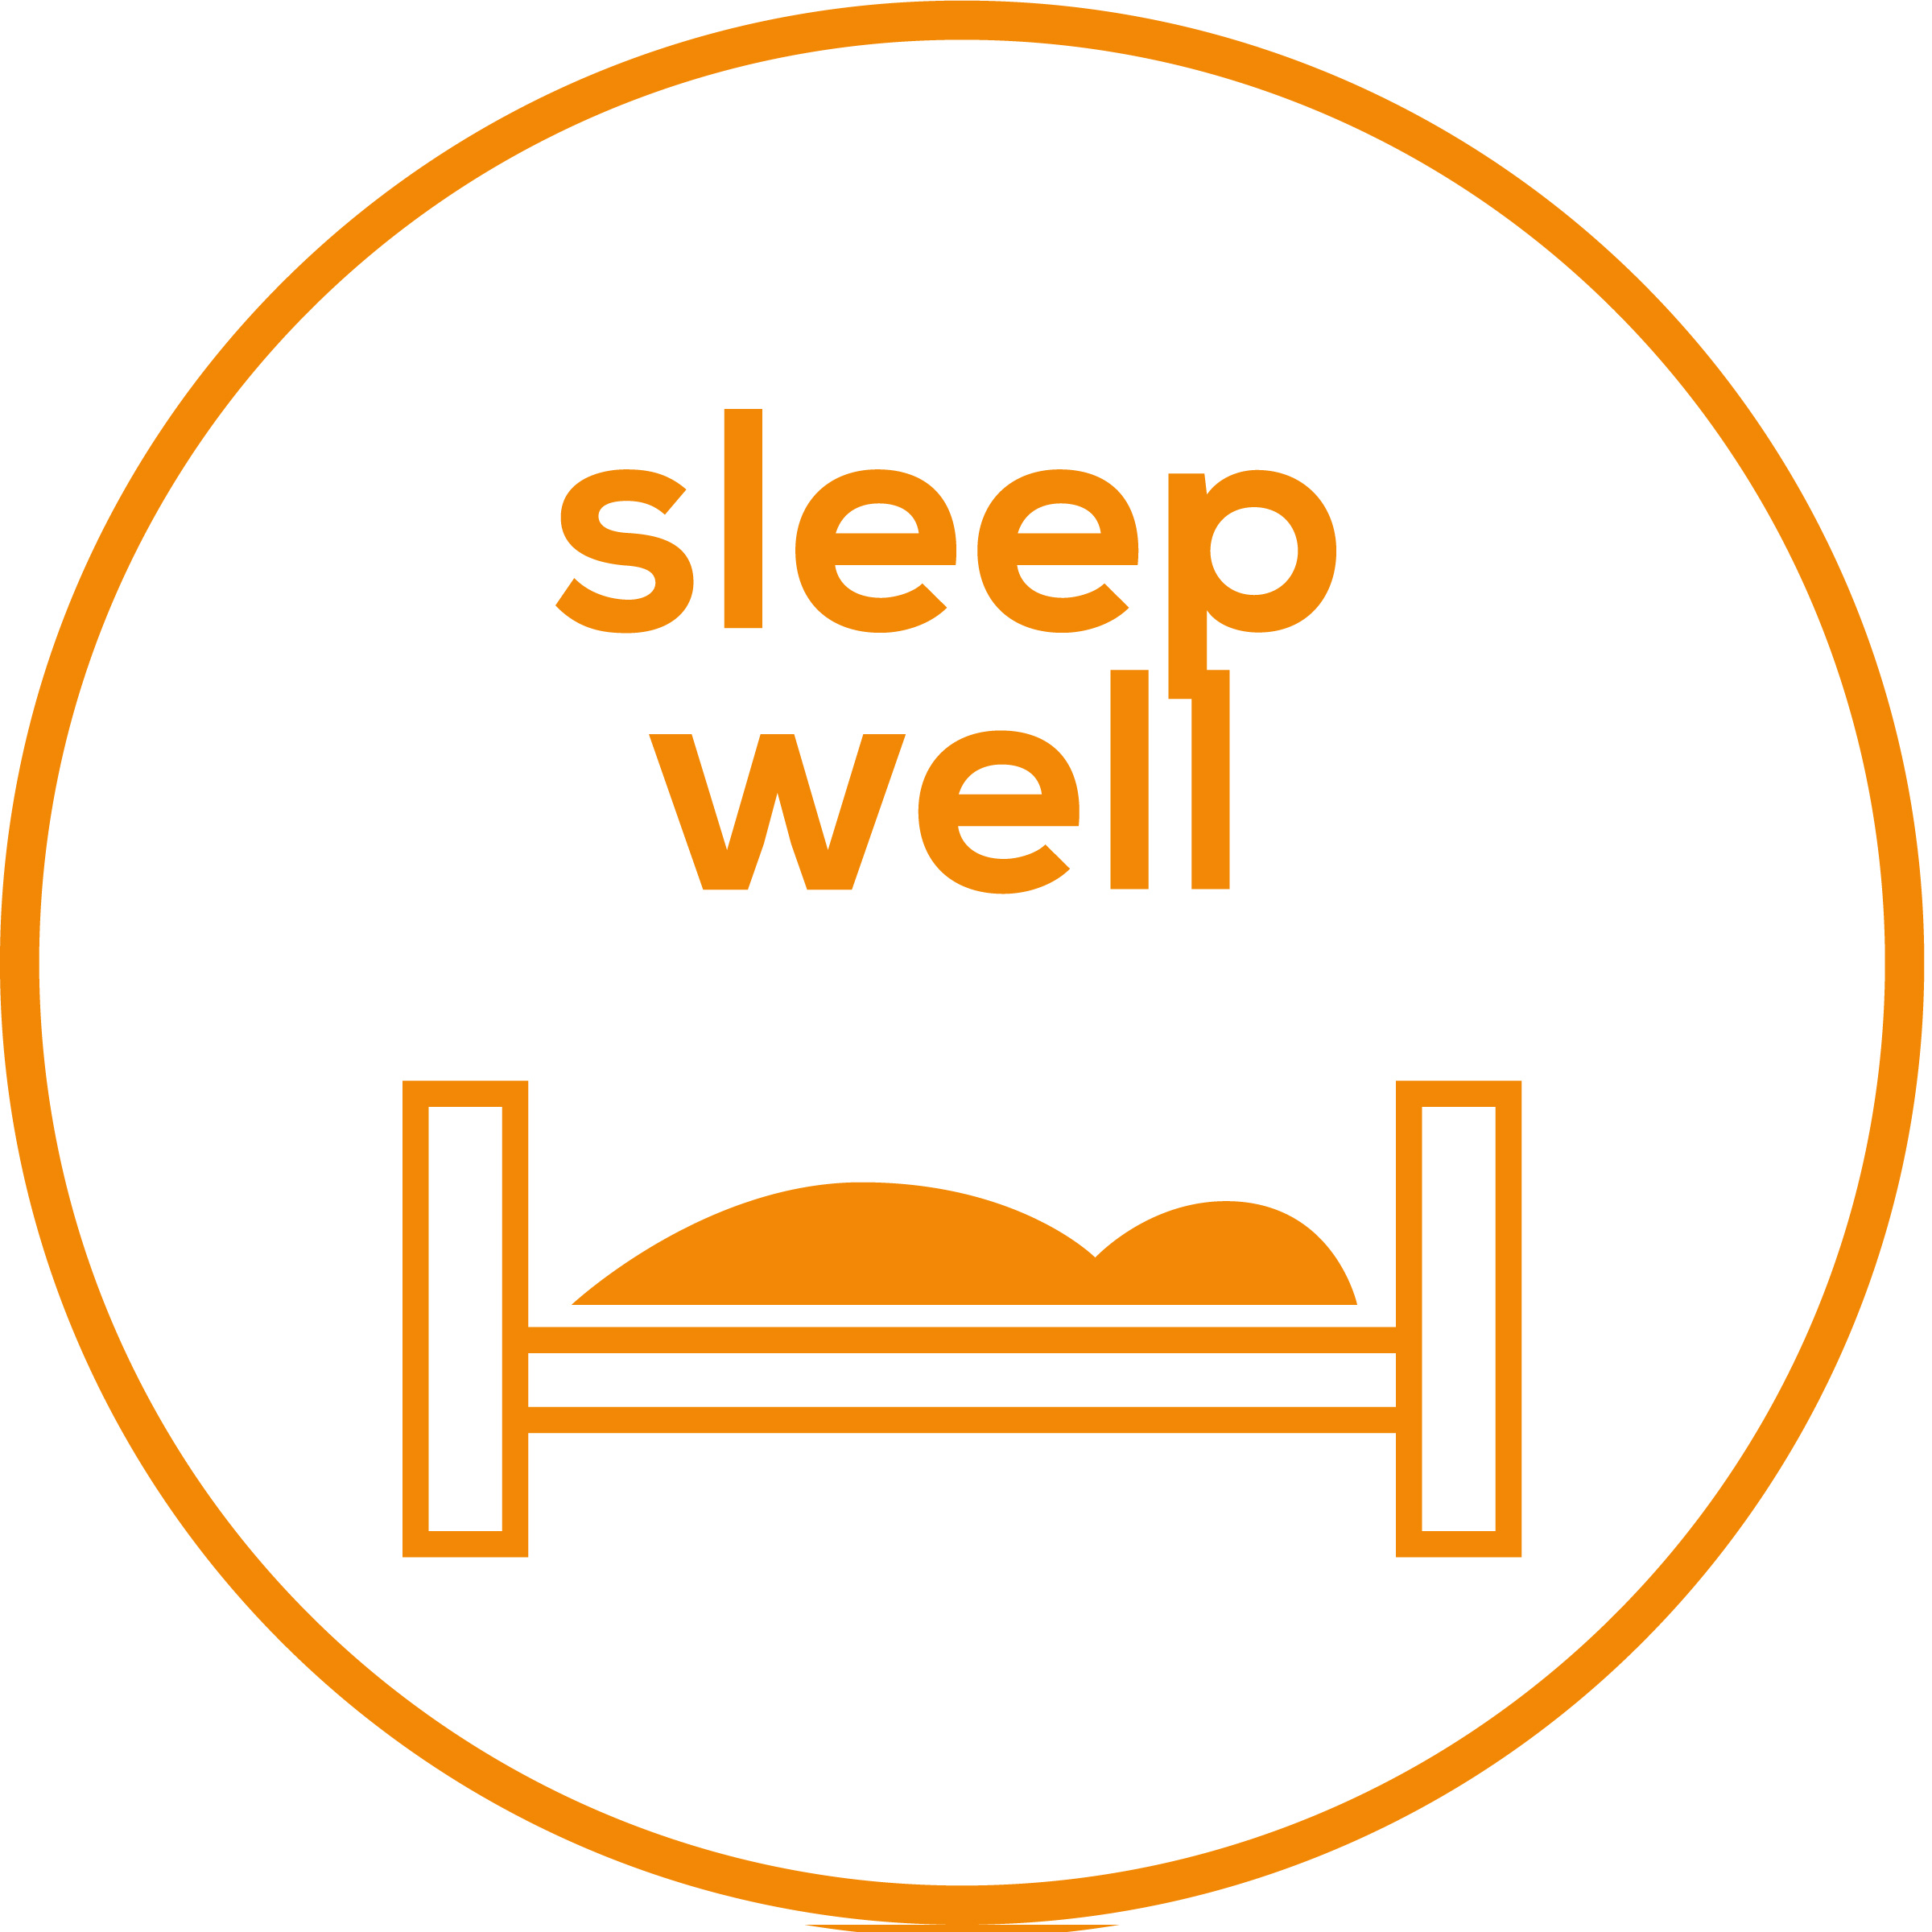 Sleep well To support a conscious breathing rhythm